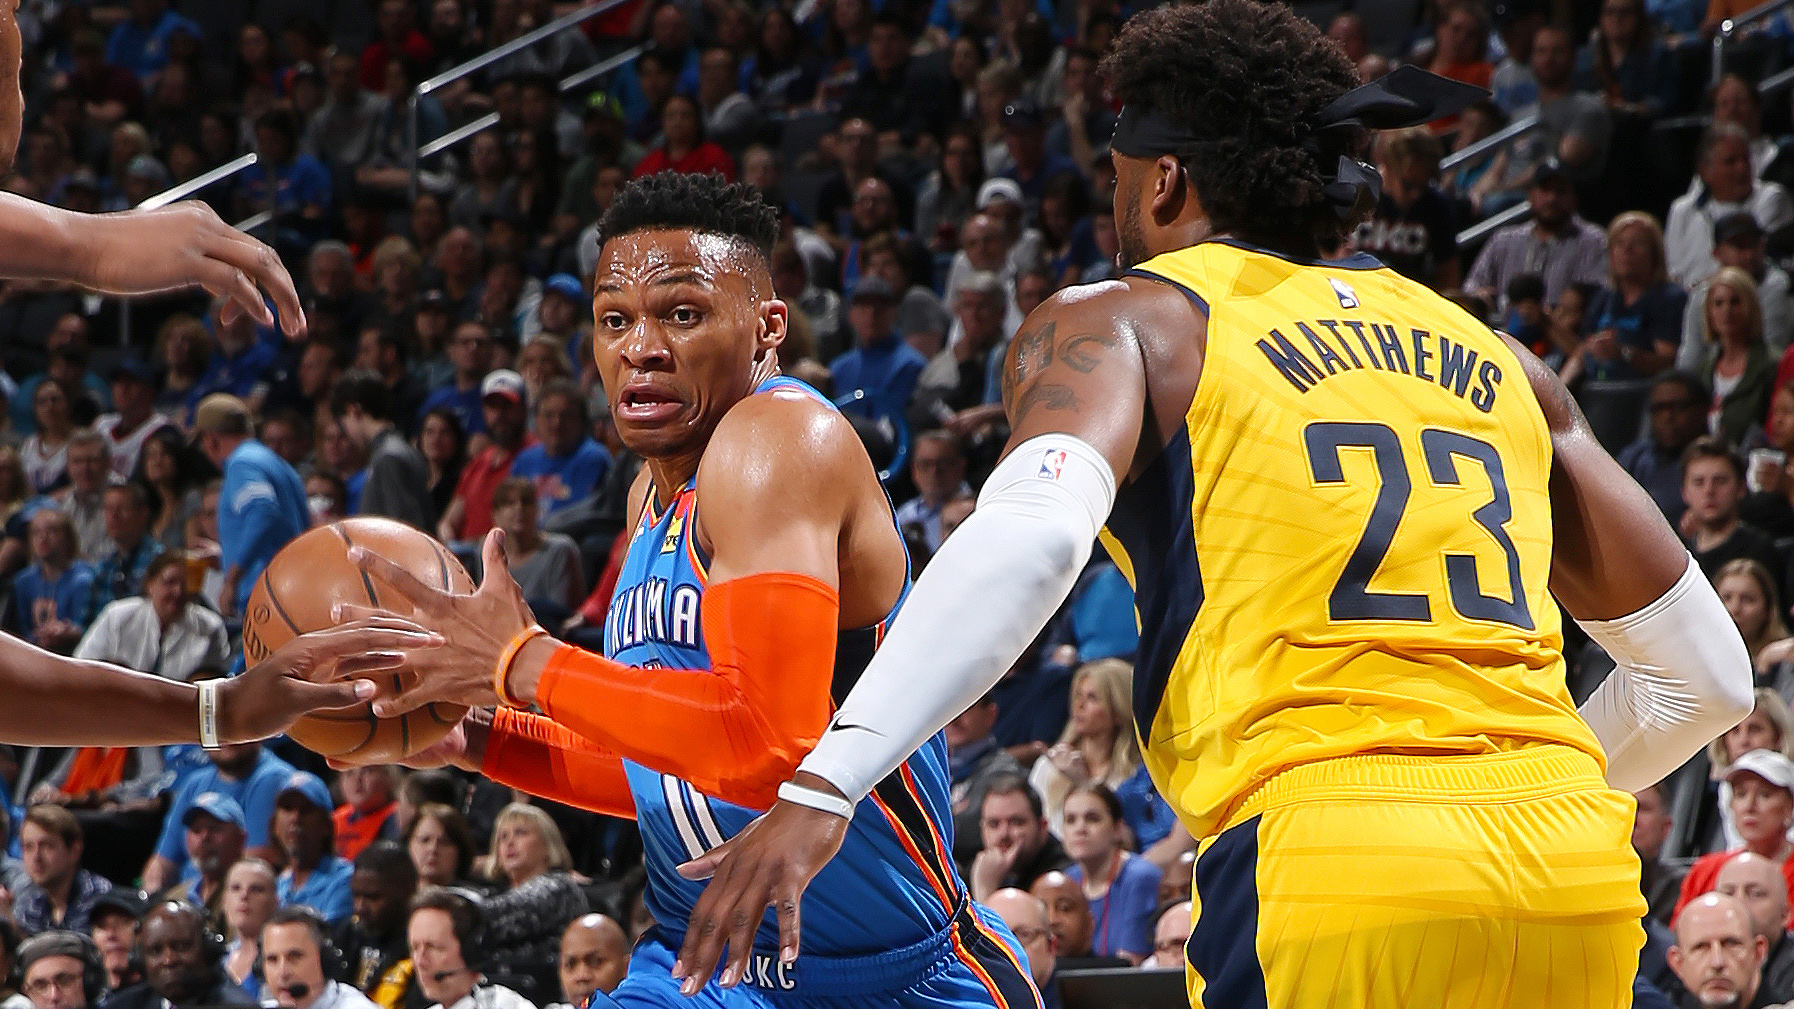 GAME RECAP: Pacers 99, Thunder 107